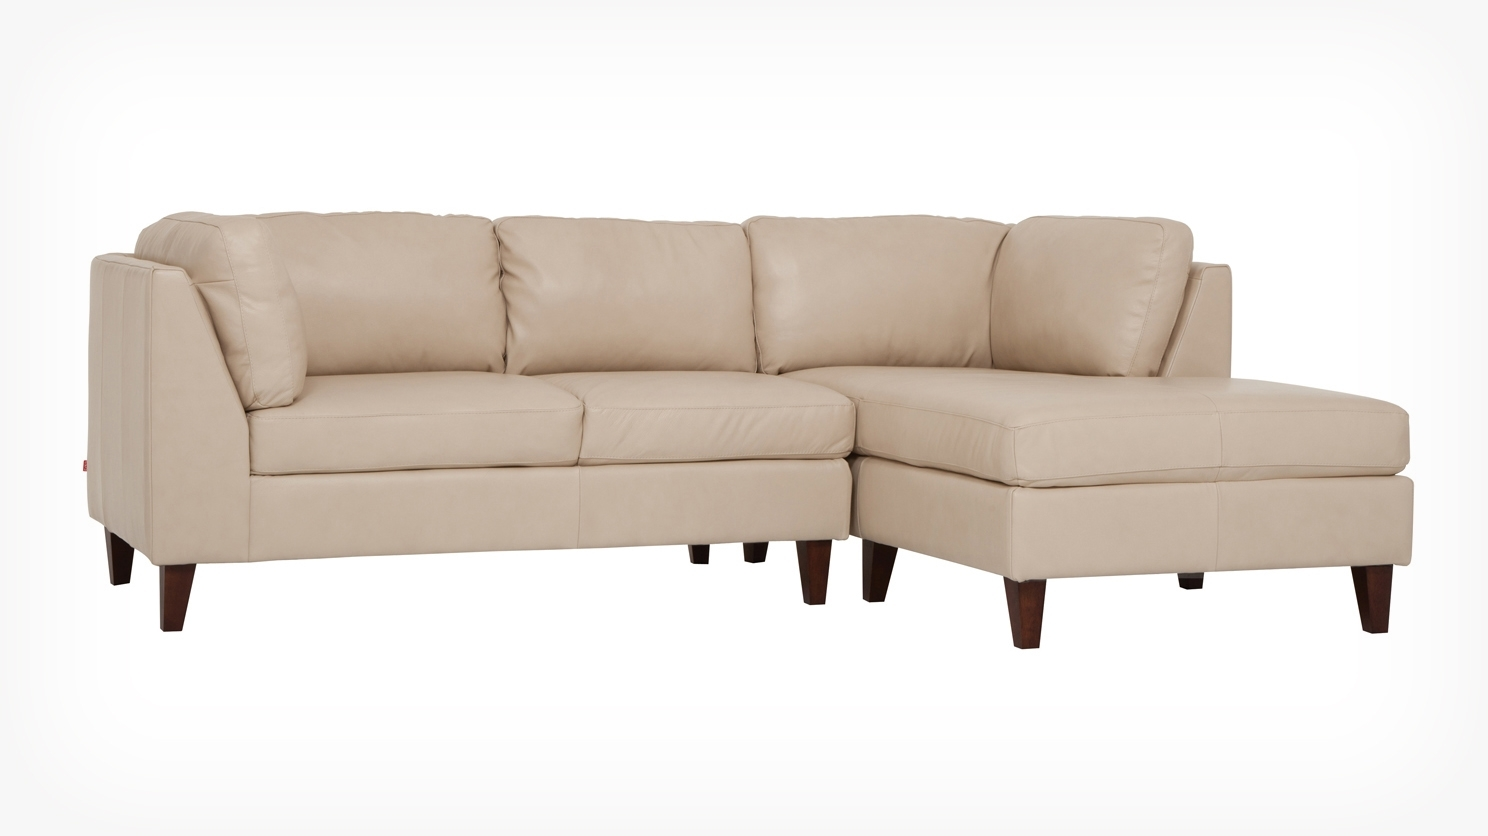 Salema 2 Piece Sectional Sofa With Chaise – Leather Throughout Halifax Sectional Sofas (View 14 of 20)